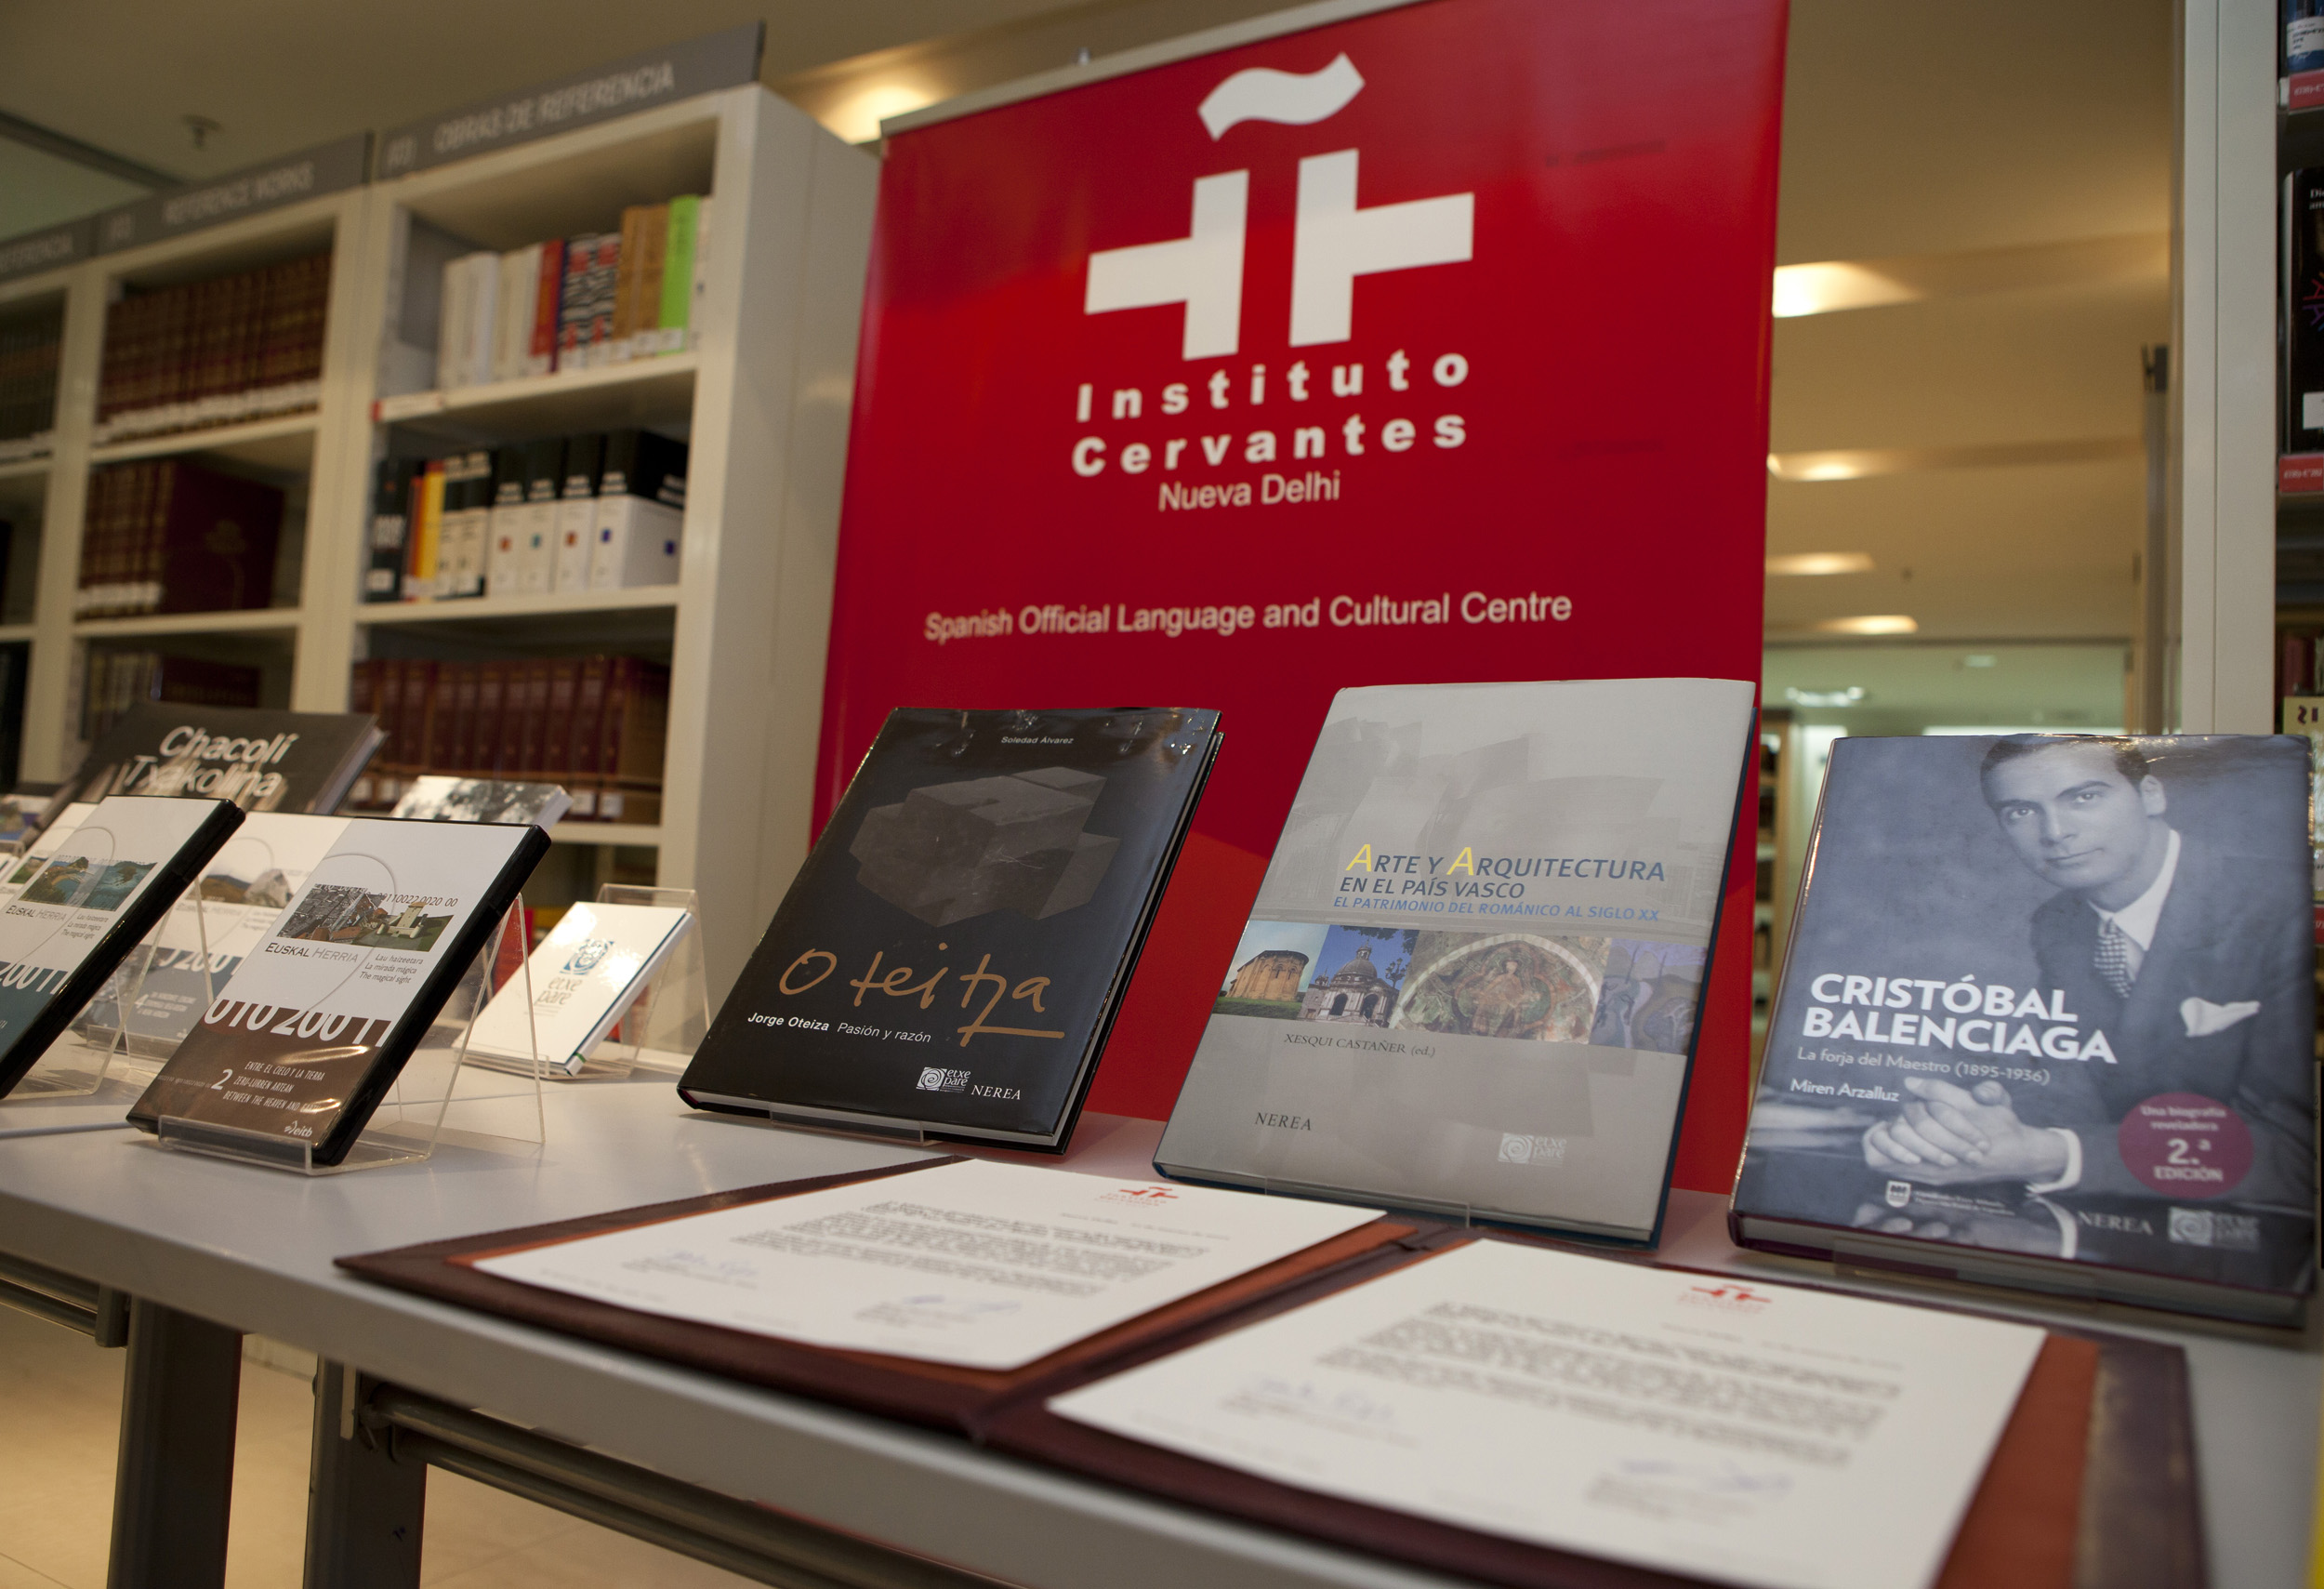 2012_03_20_instituto_cervantes9.jpg